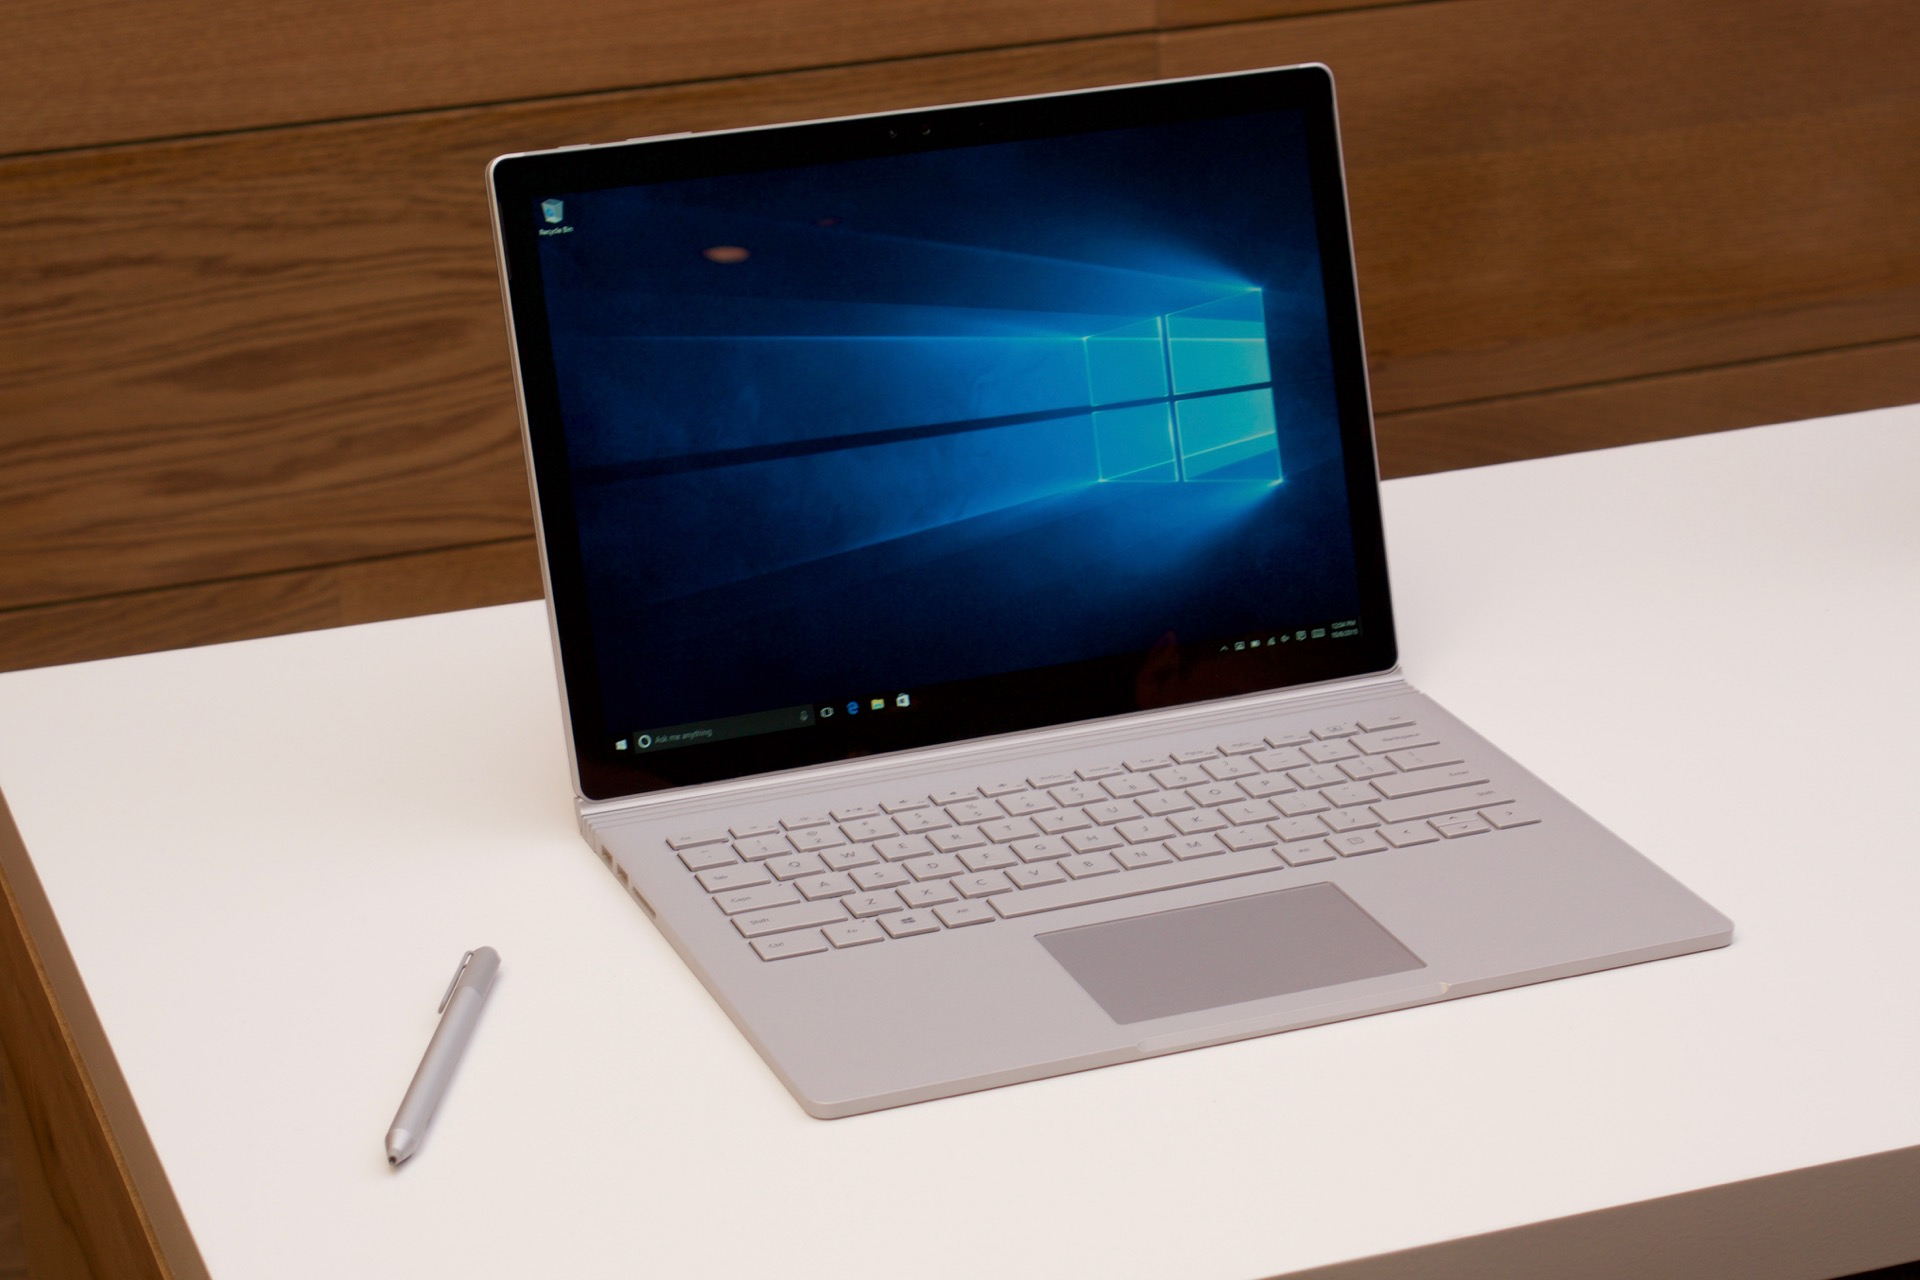 The Surface Book and pen.